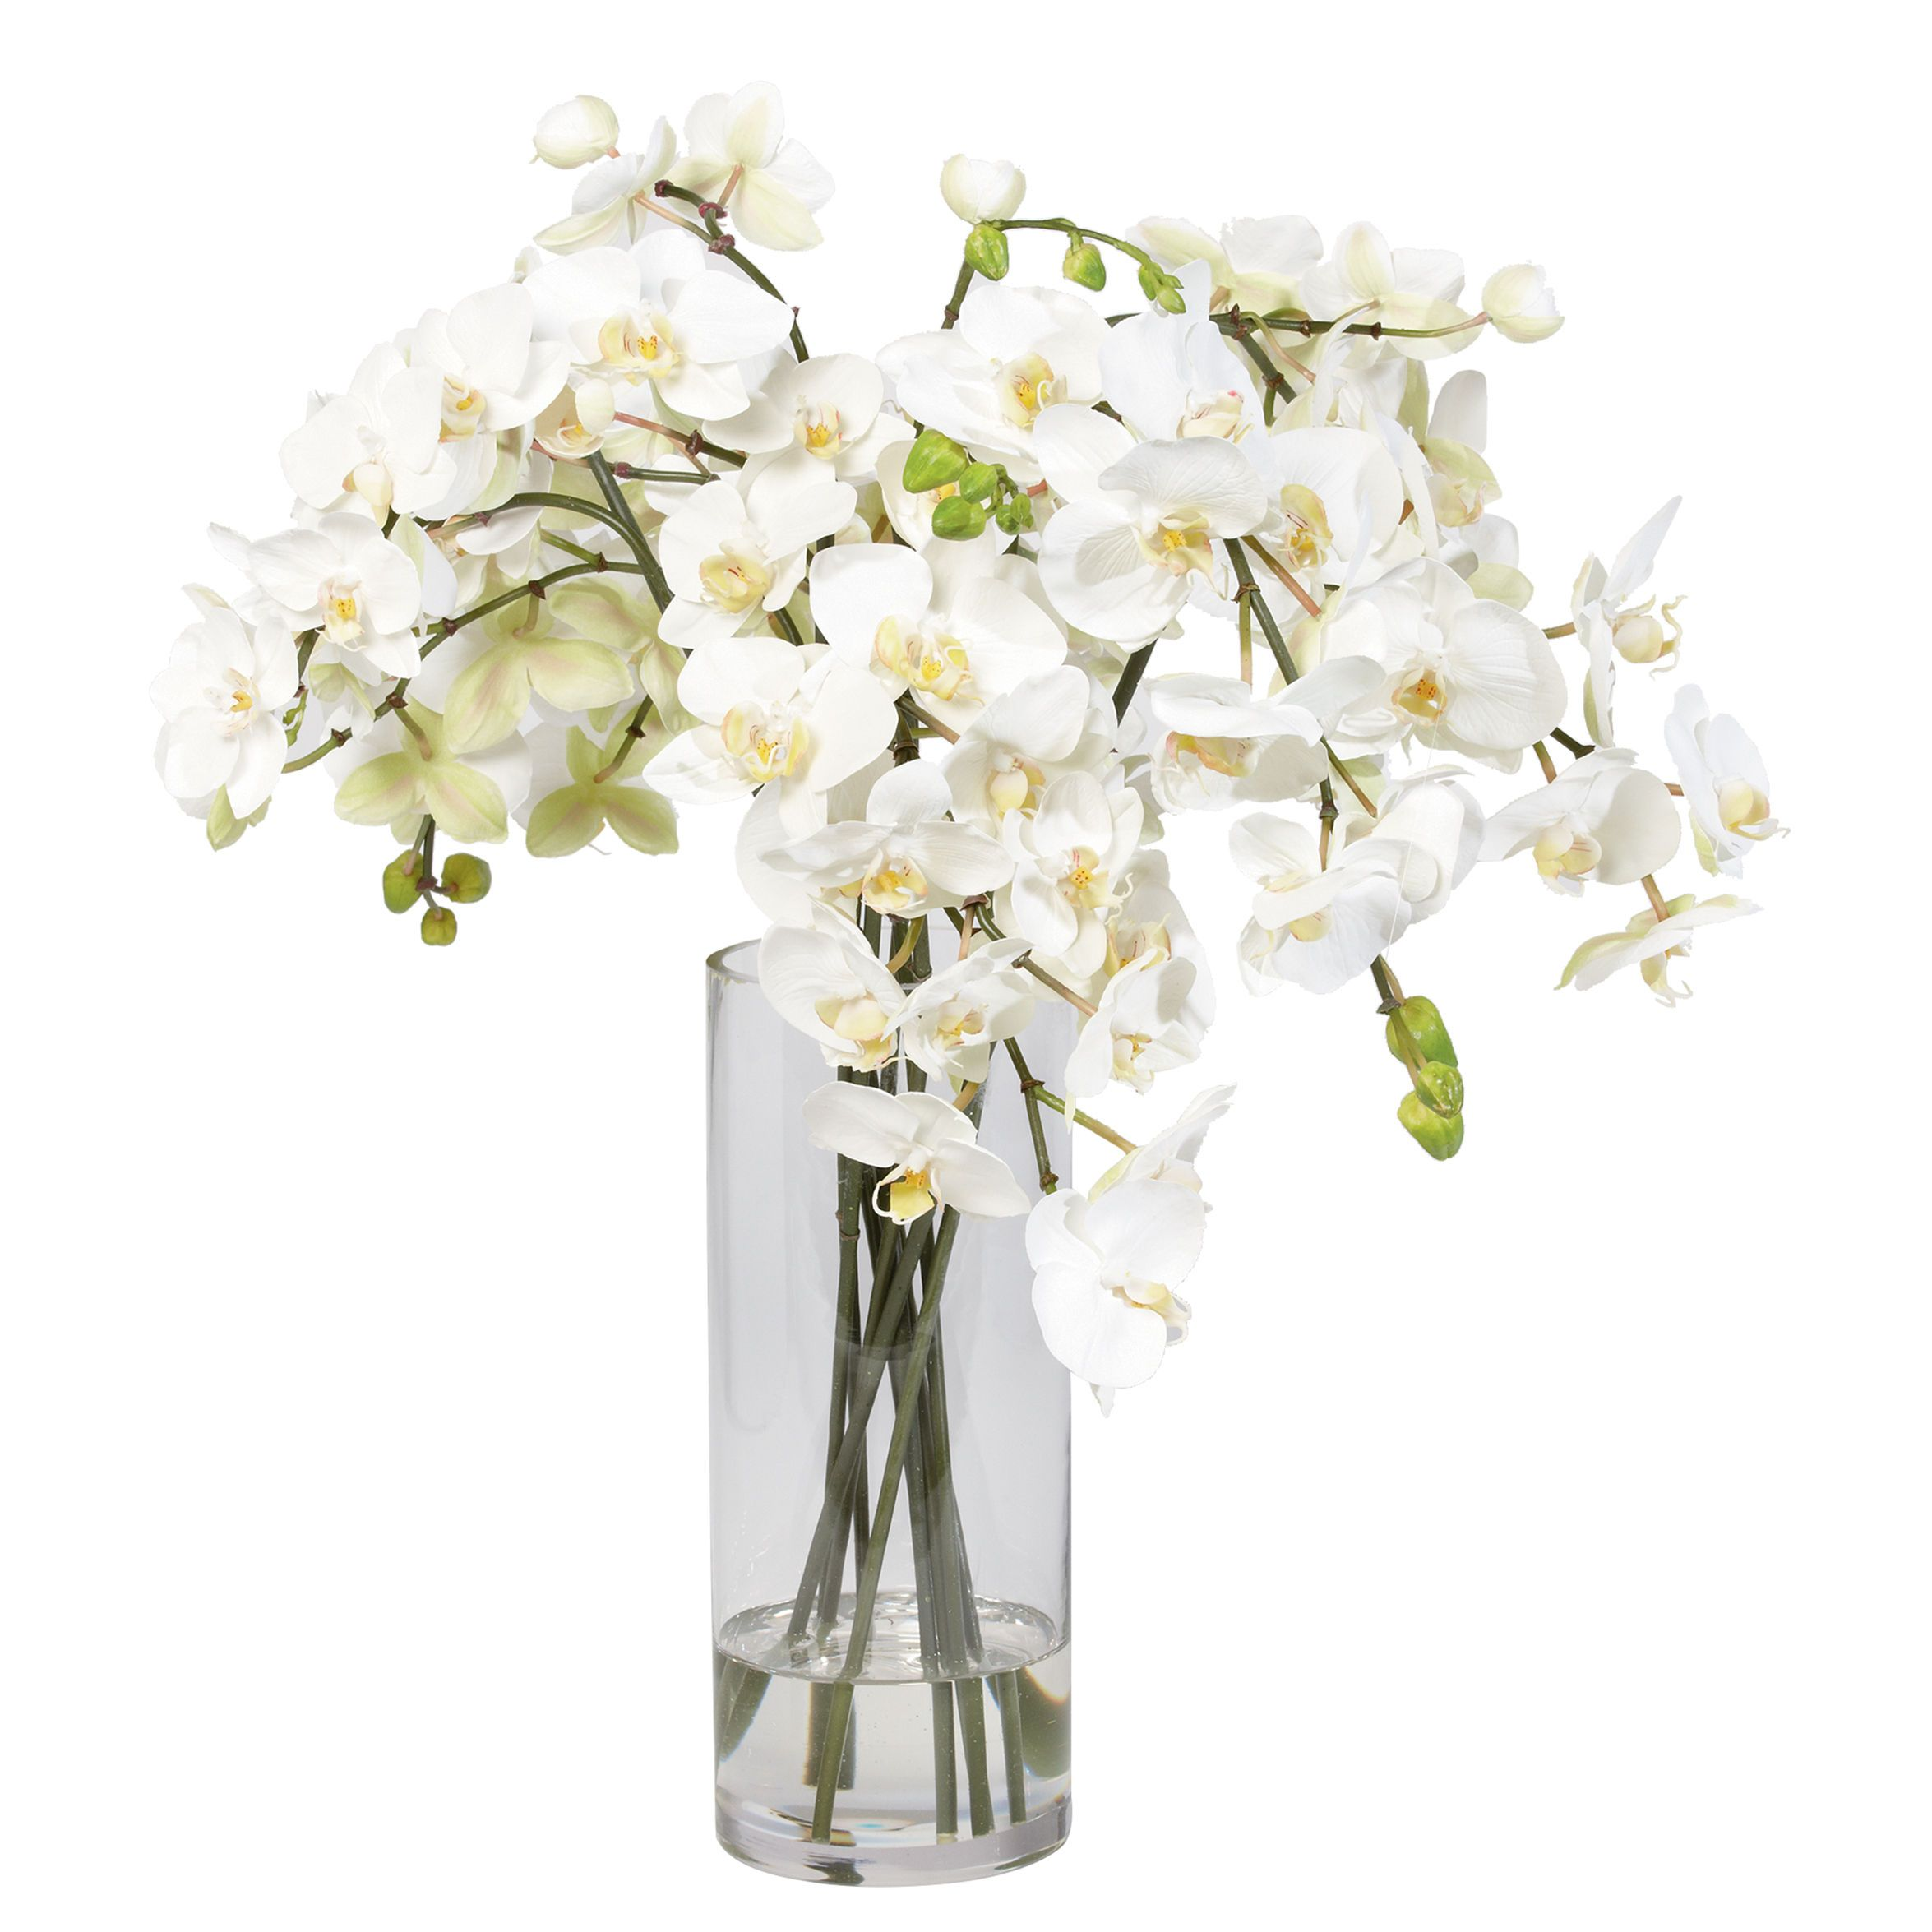 silk flower arrangements white orchids in glass vase. Black Bedroom Furniture Sets. Home Design Ideas